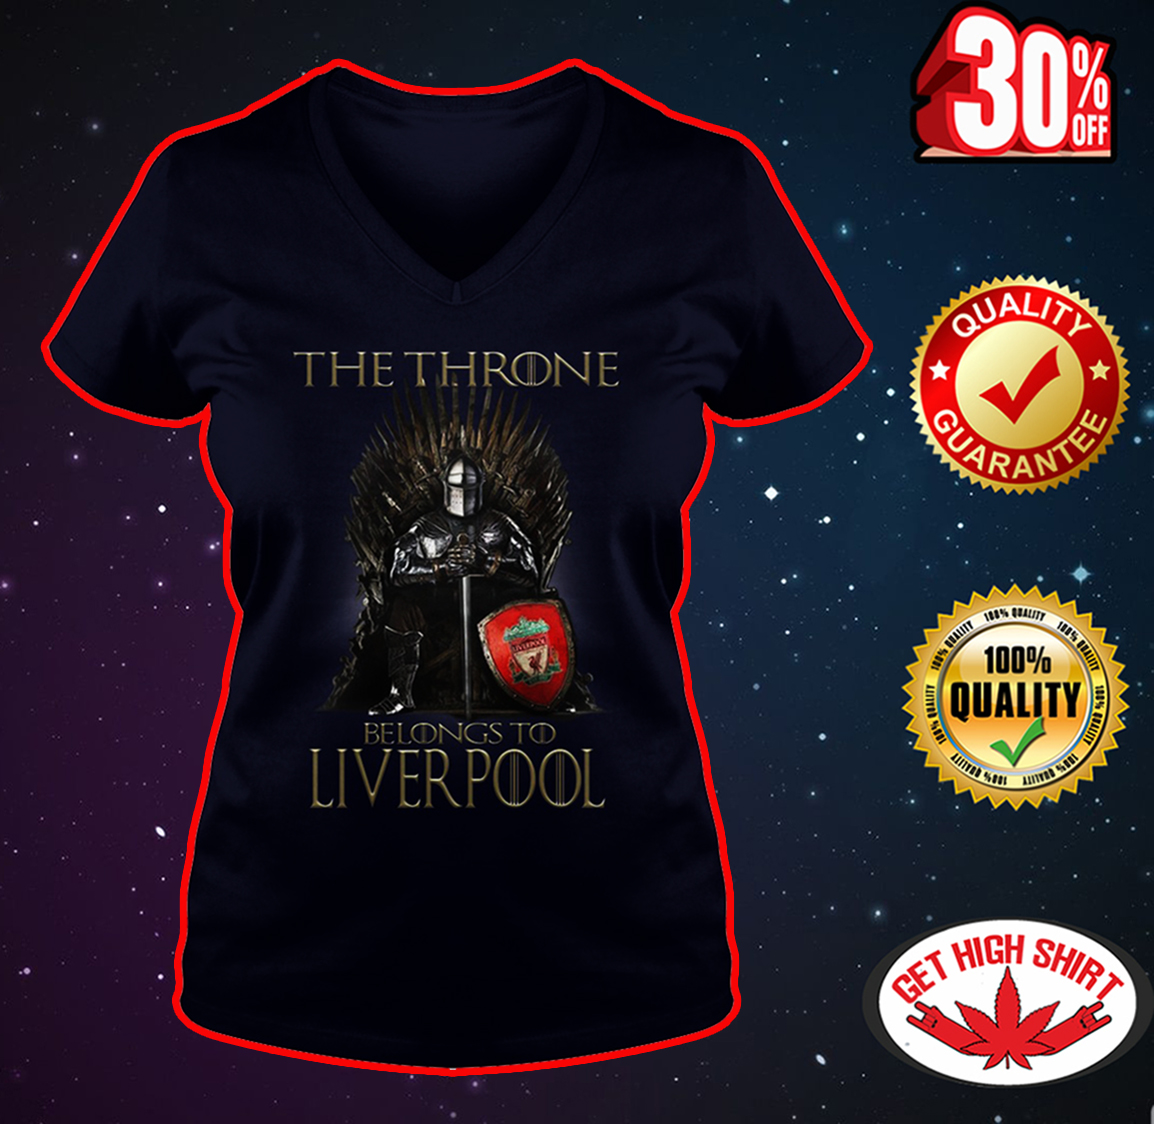 The Throne Belongs To Liverpool v-neck